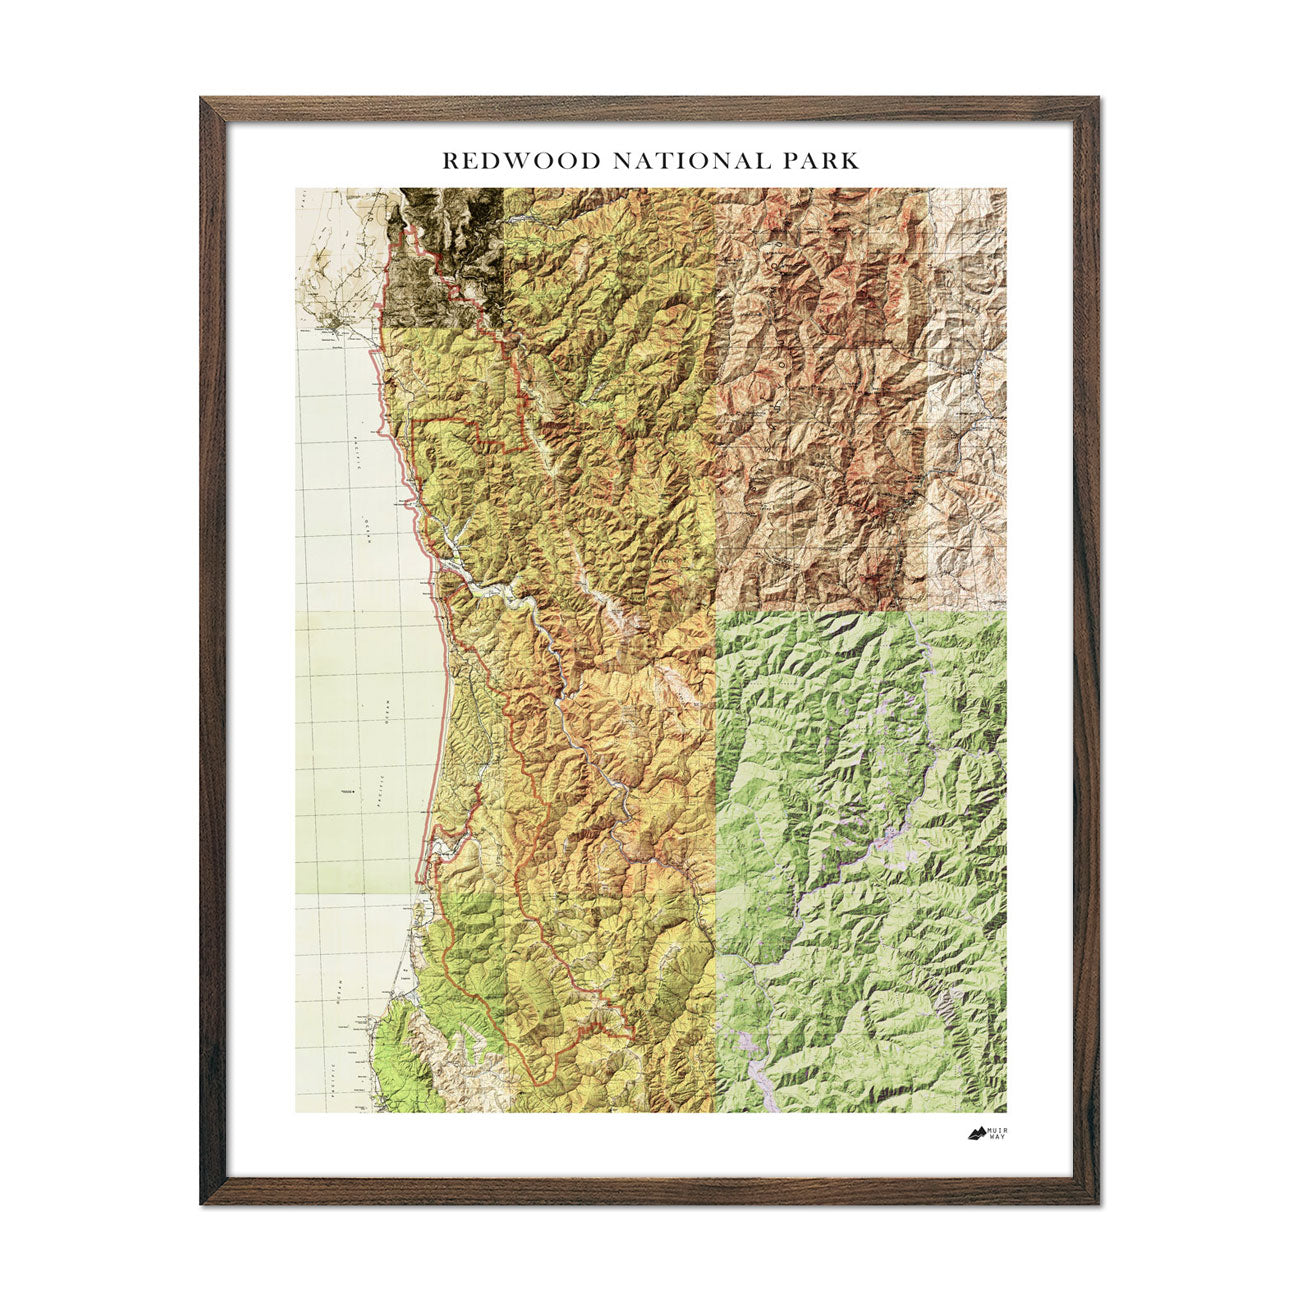 Redwood National Park Relief Map